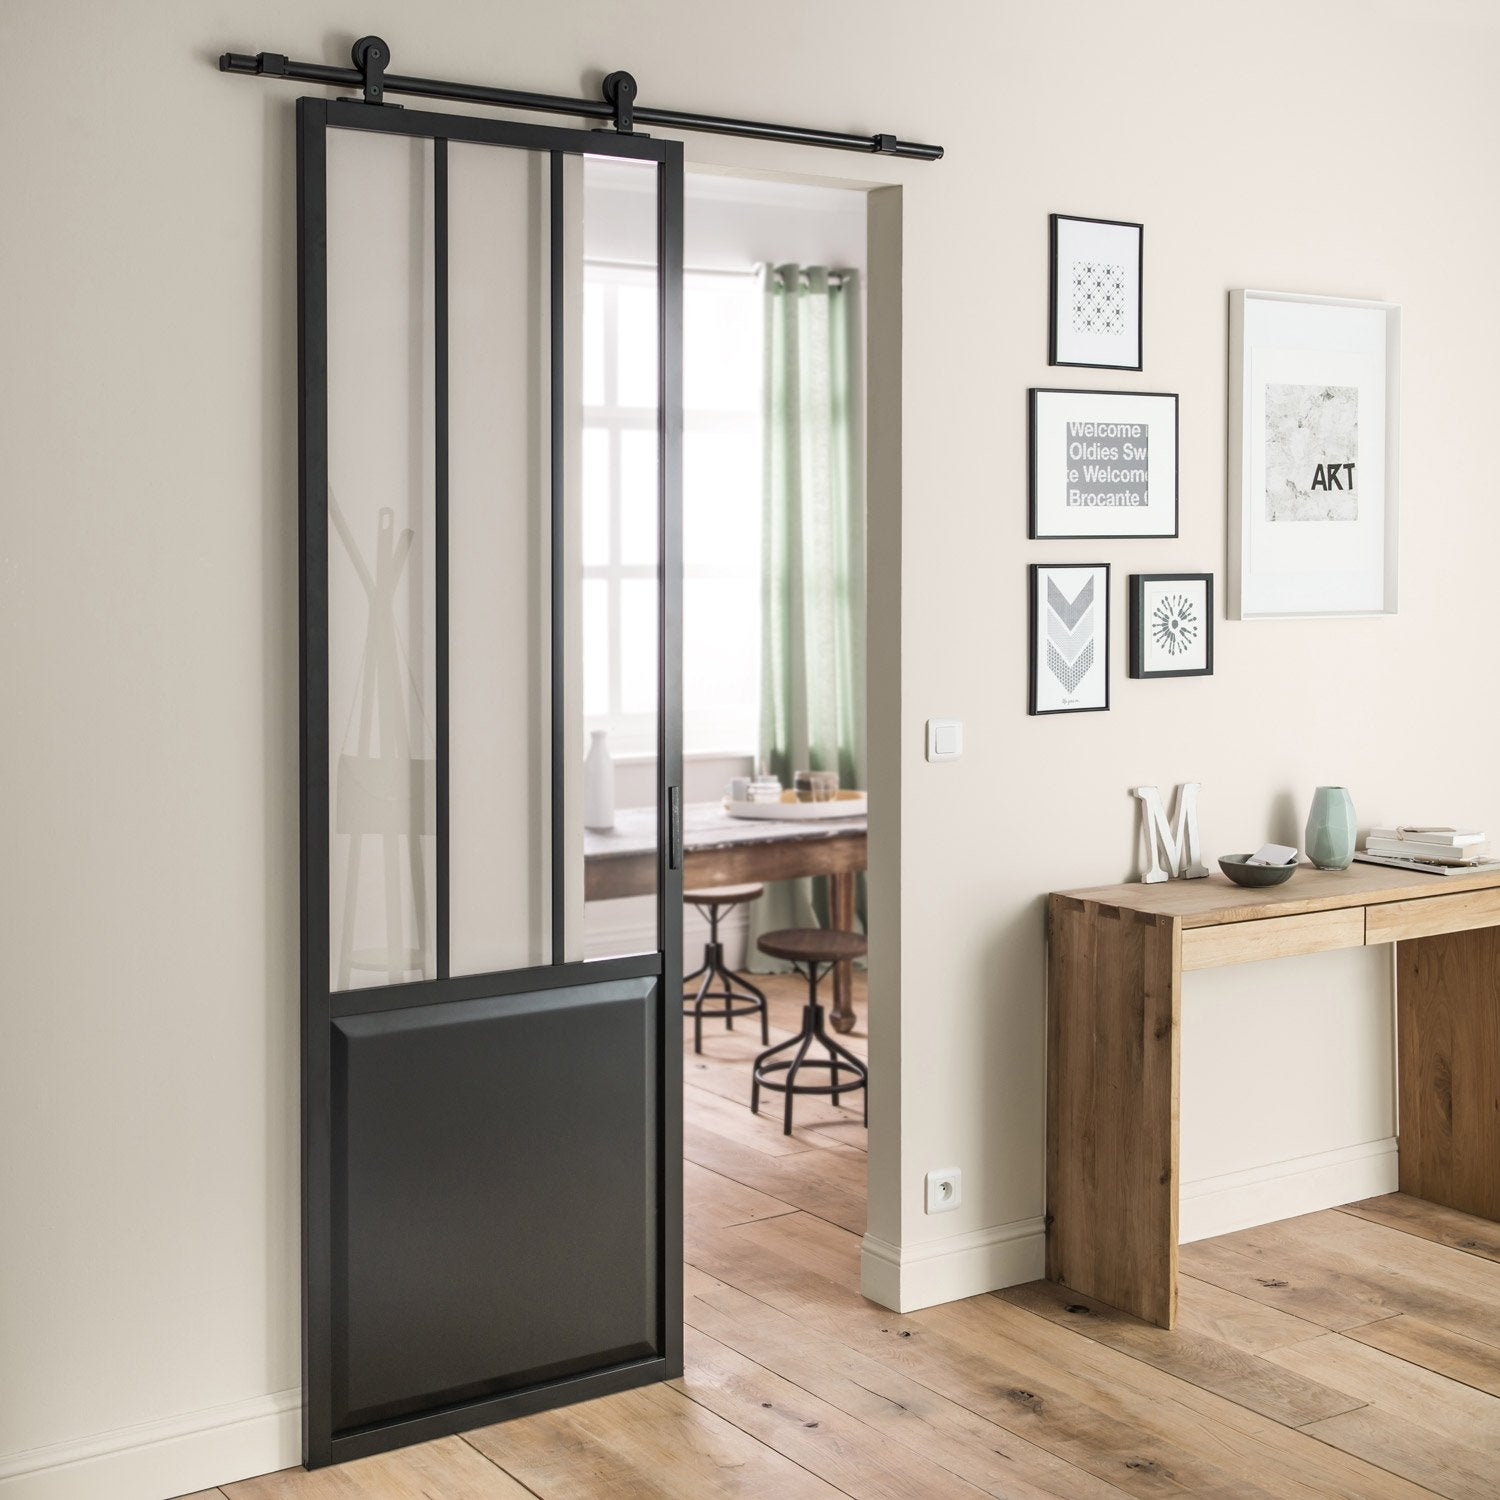 Ensemble porte coulissante atelier mdf rev tu avec le rail for Porte atelier coulissante